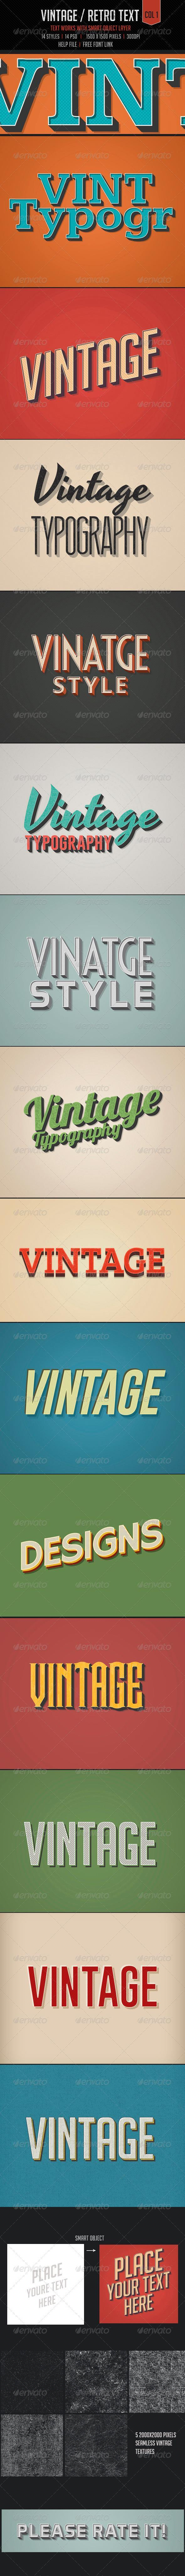 3D Vintage Retro Text Photoshop Style